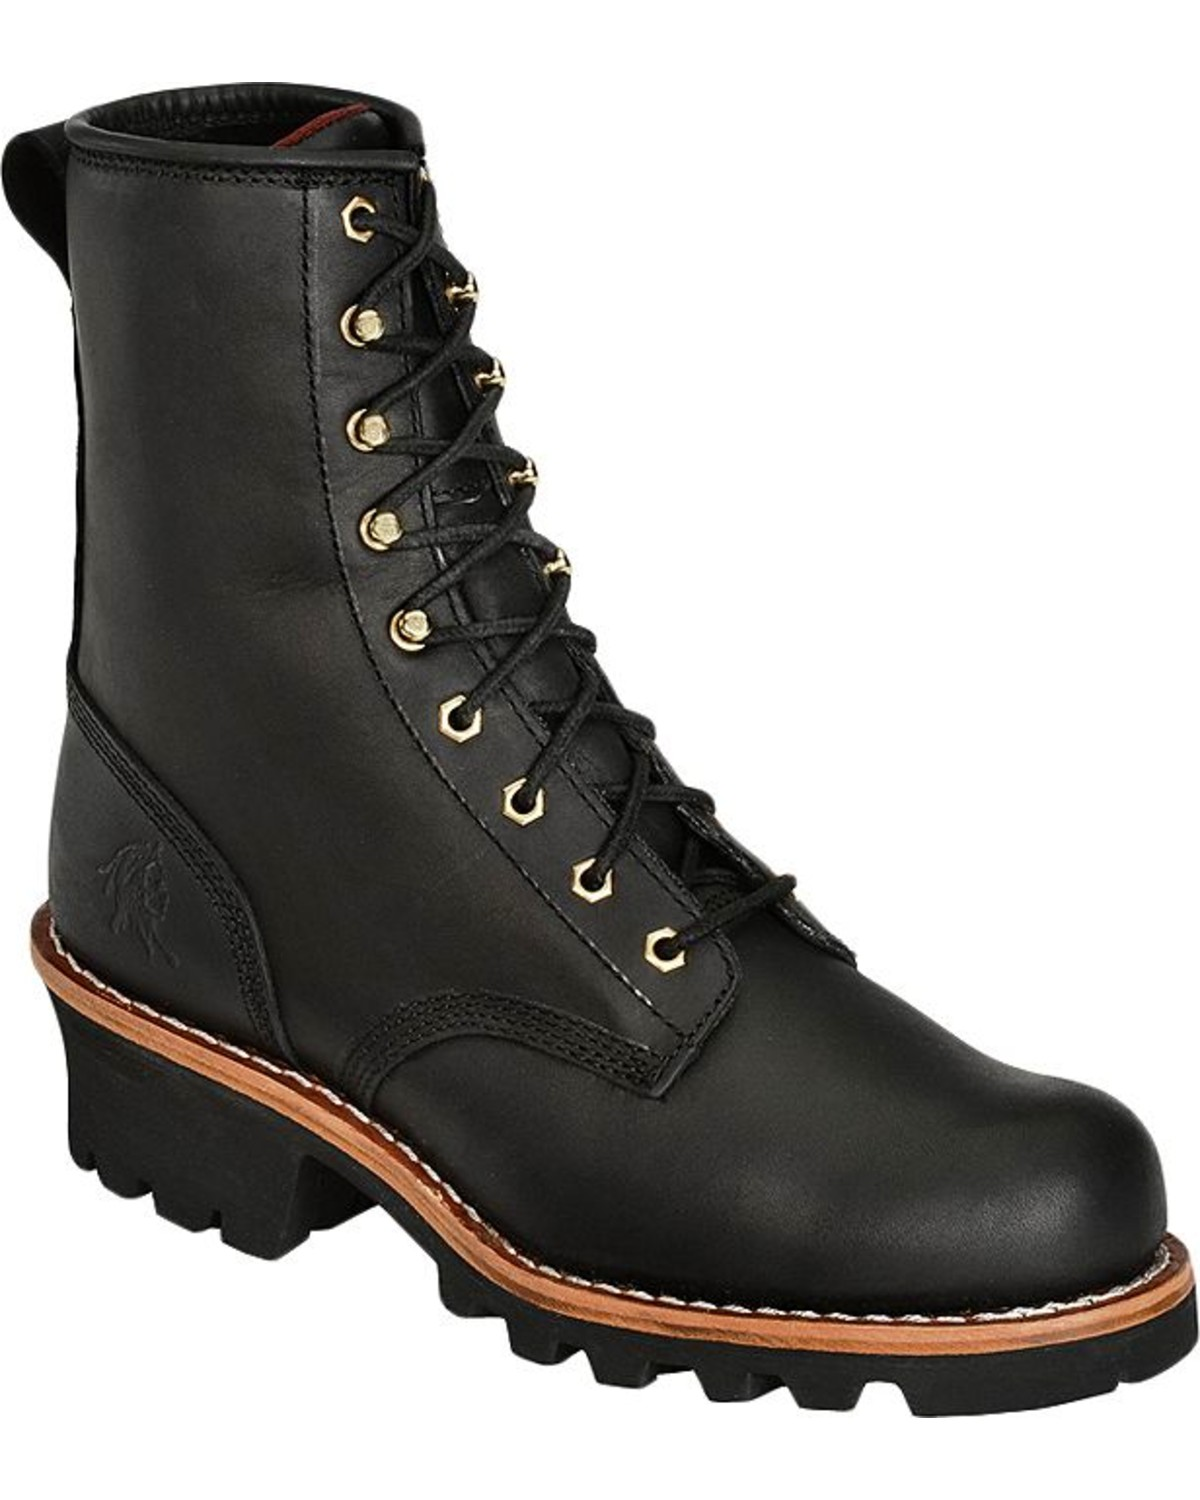 Chippewa Women s Insulated Logger Work Boots  35b3a66aec